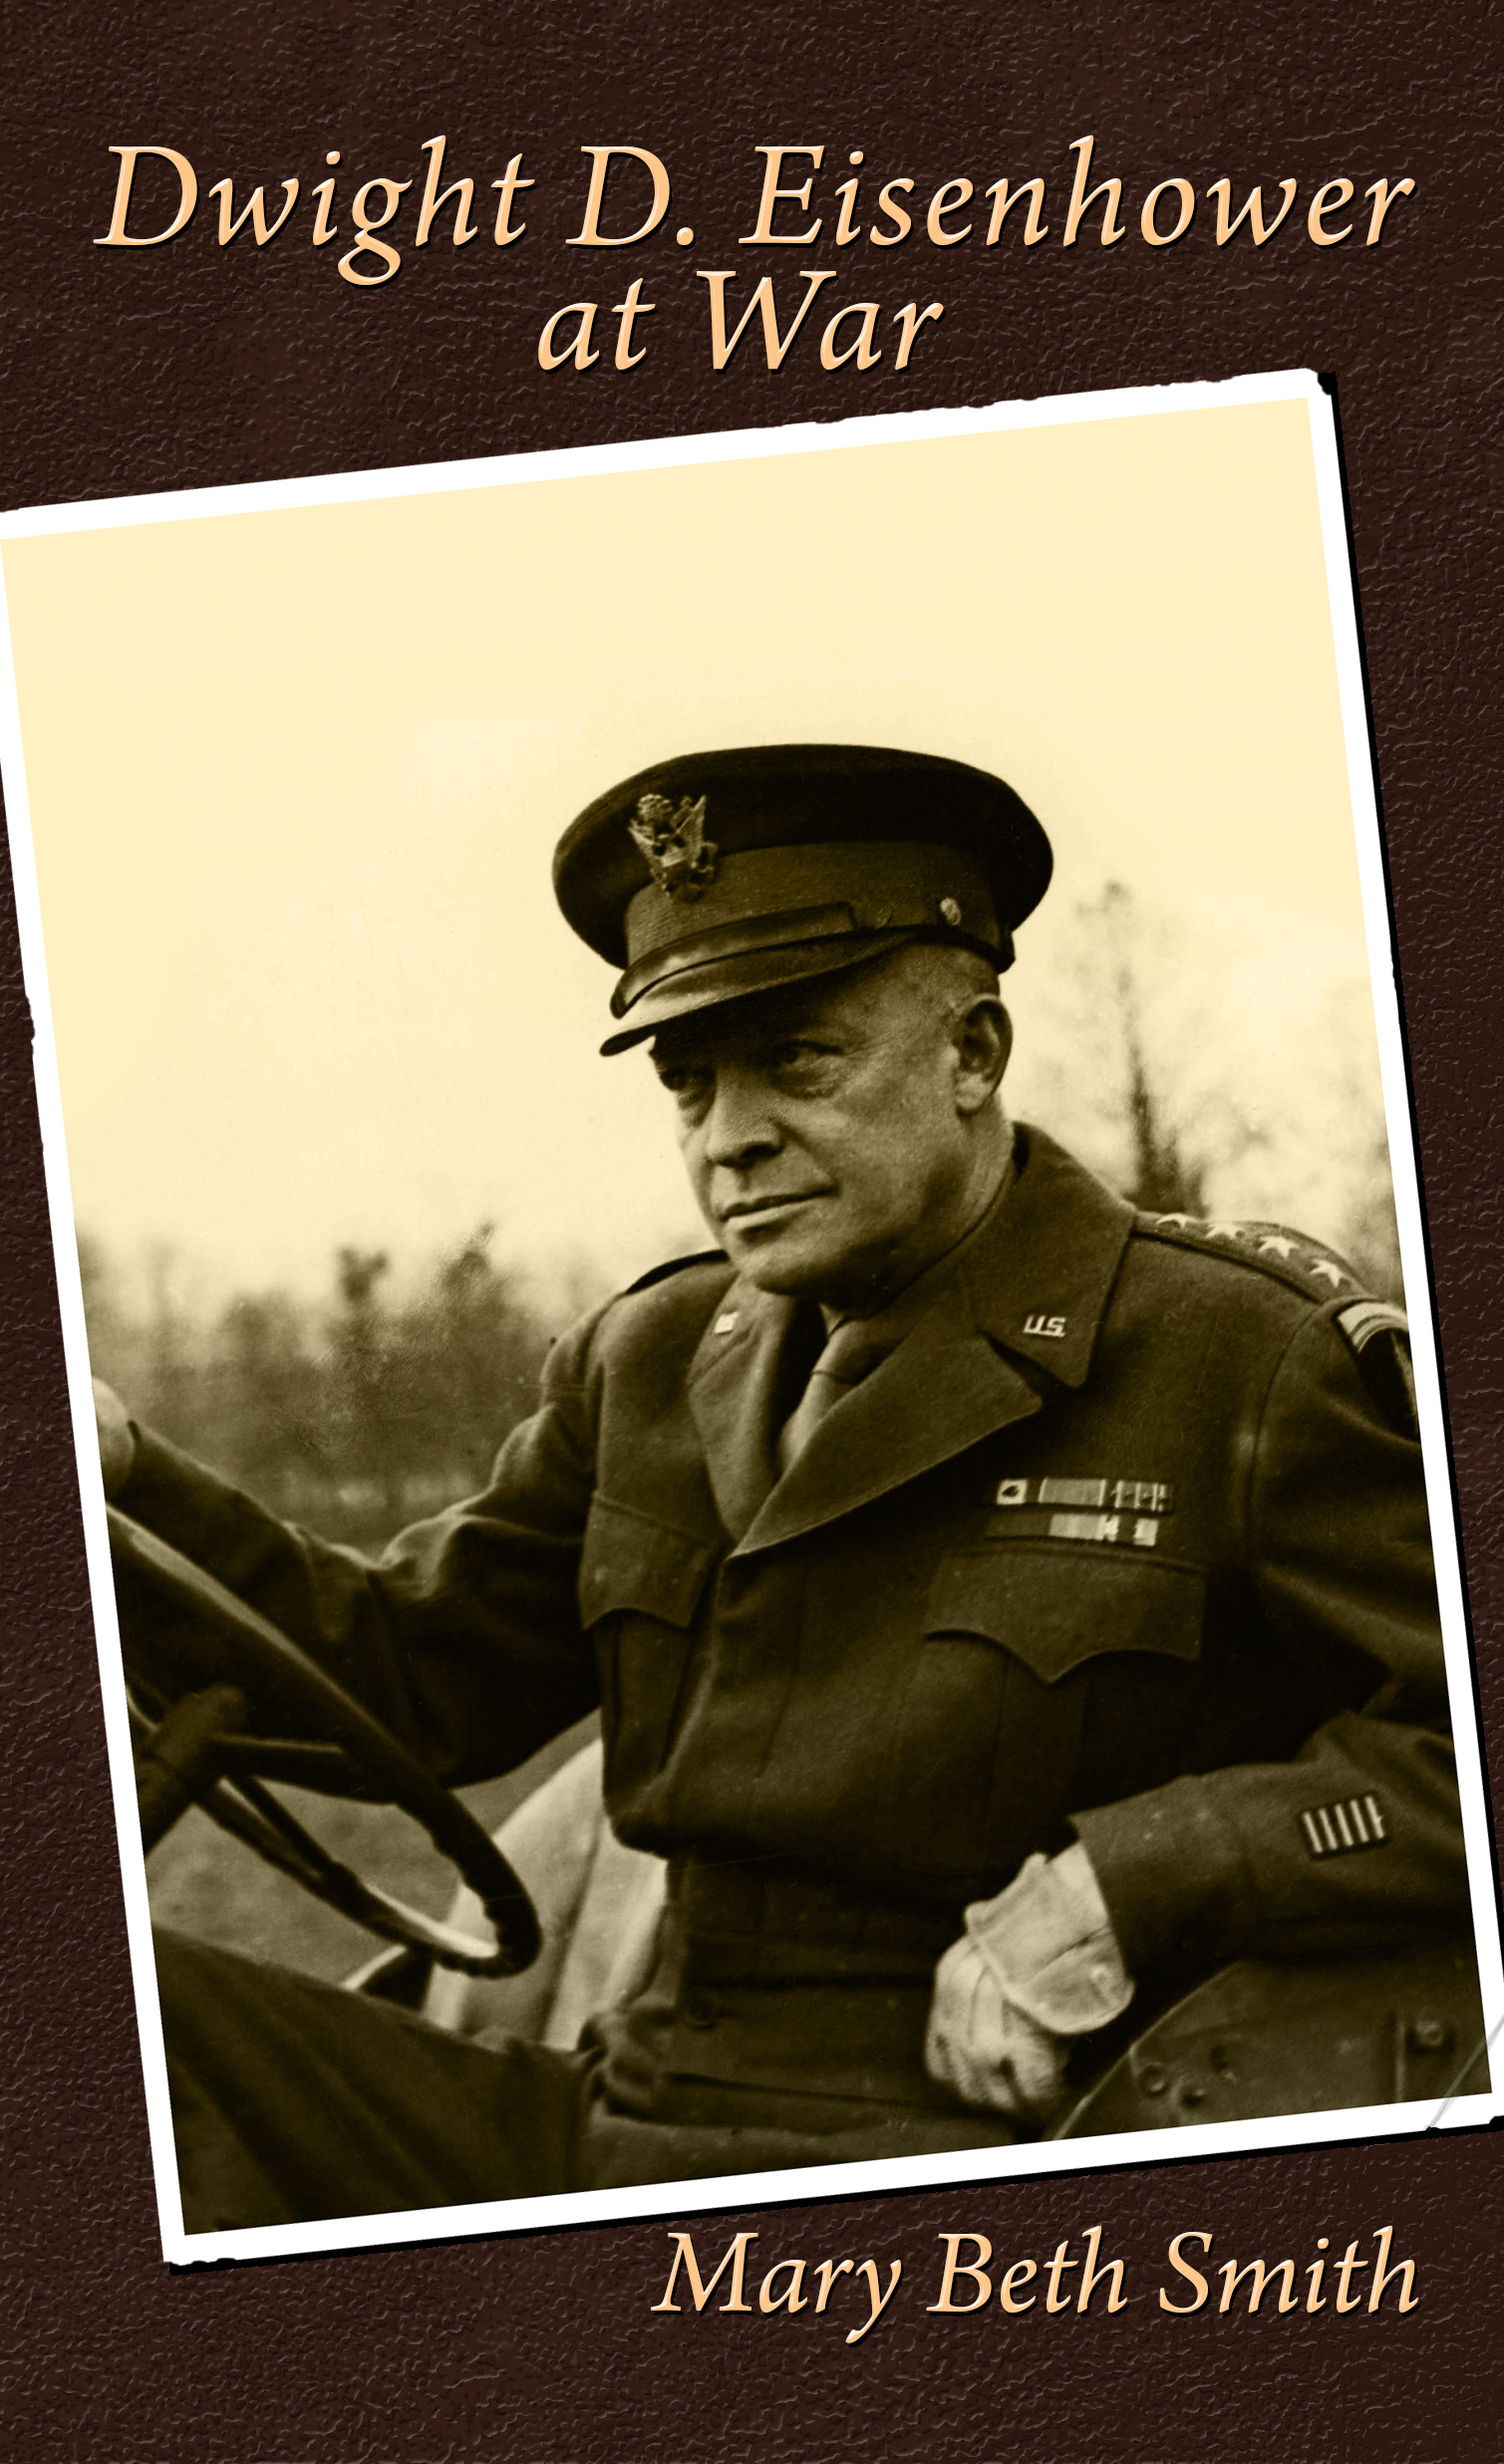 Dwight D. Eisenhower at War, by Mary E. Smith